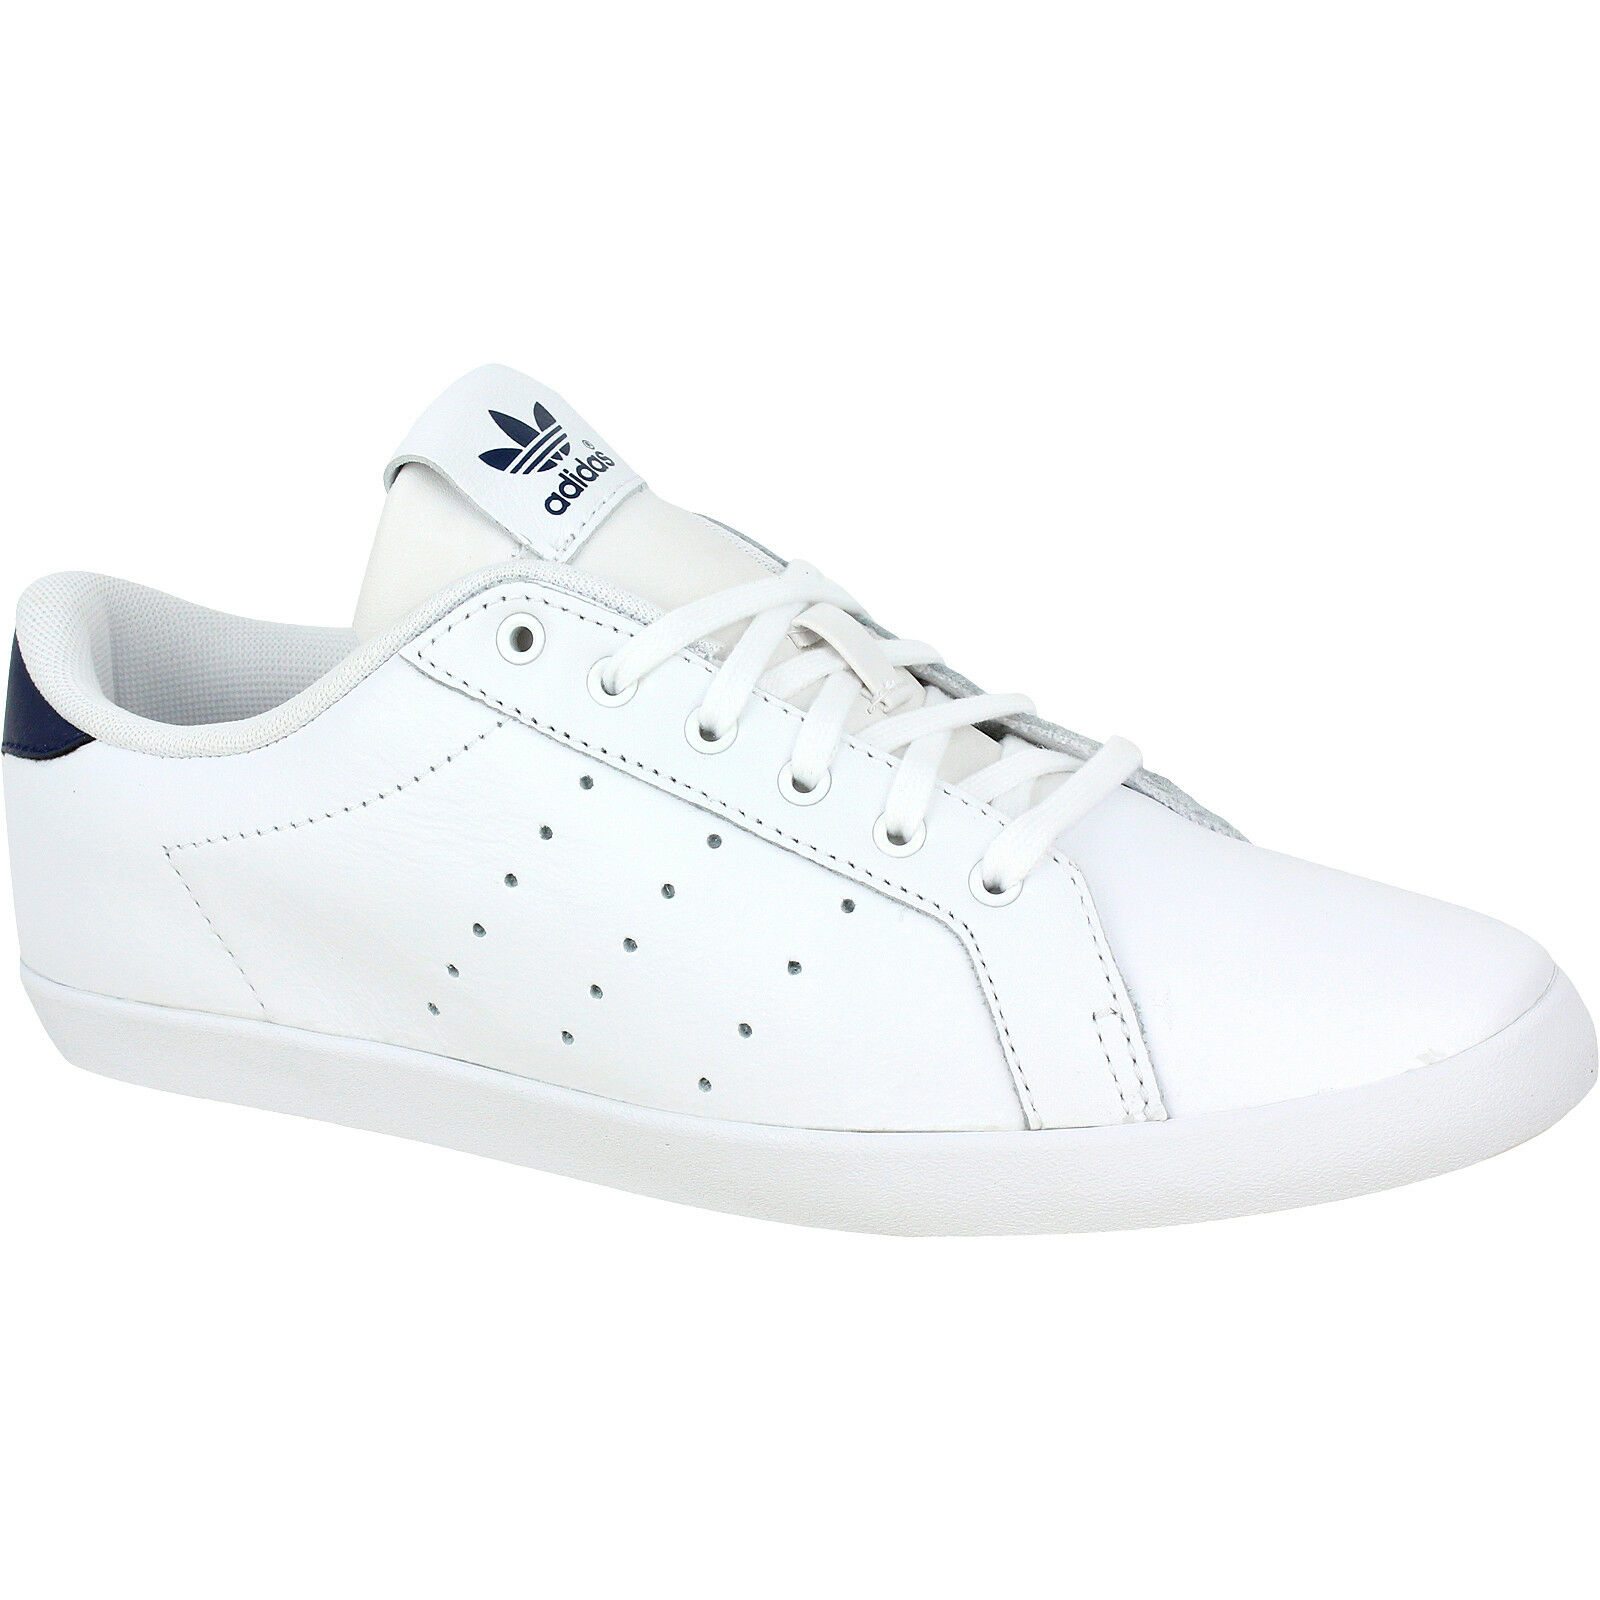 Adidas Originals Miss Stan Womens Trainers Leather White Navy bluee Size 4.5-5.5